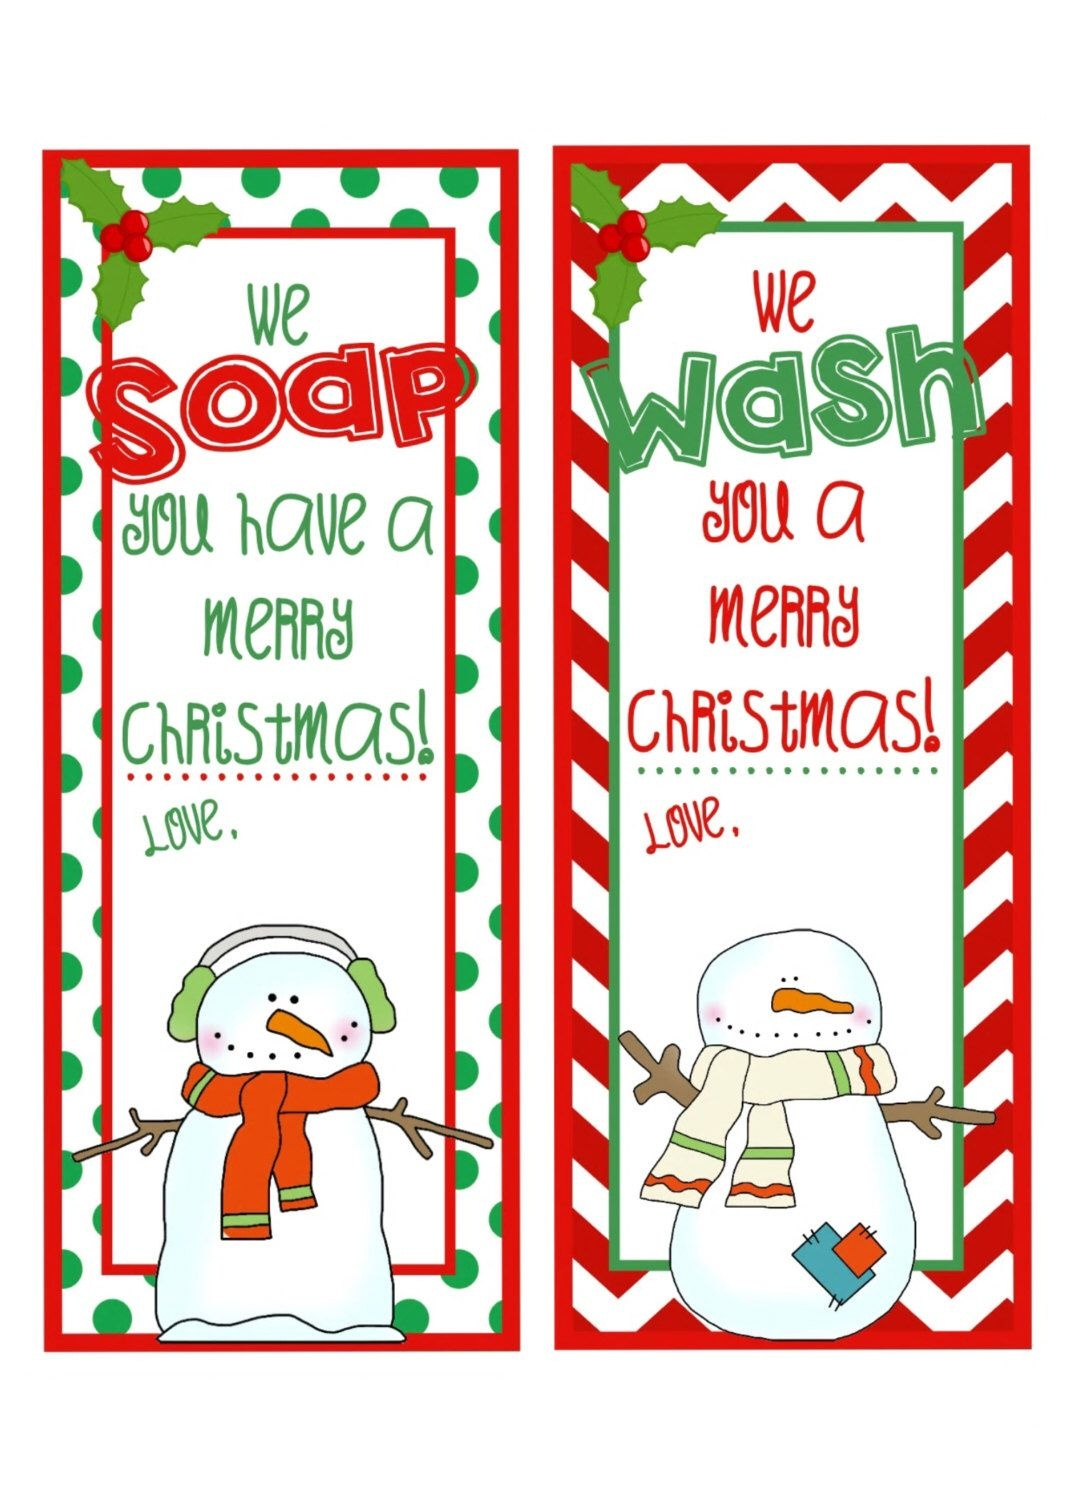 Pinkatie Gorman On Gifts And Decorations | Christmas Soap - We Wash You A Merry Christmas Free Printable